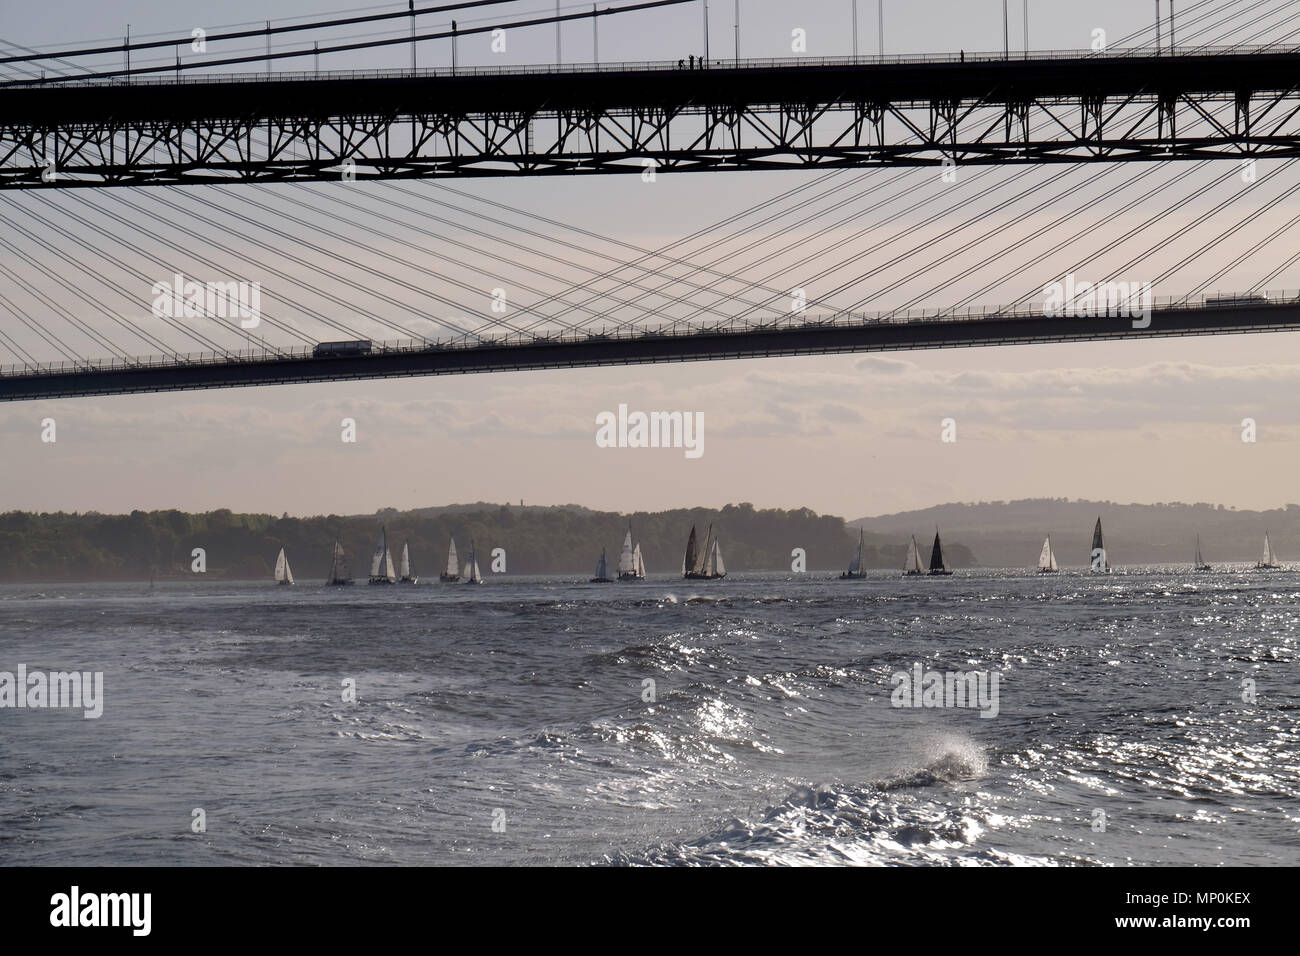 sail yachts on the River Forth below the bridges at sunset - Stock Image